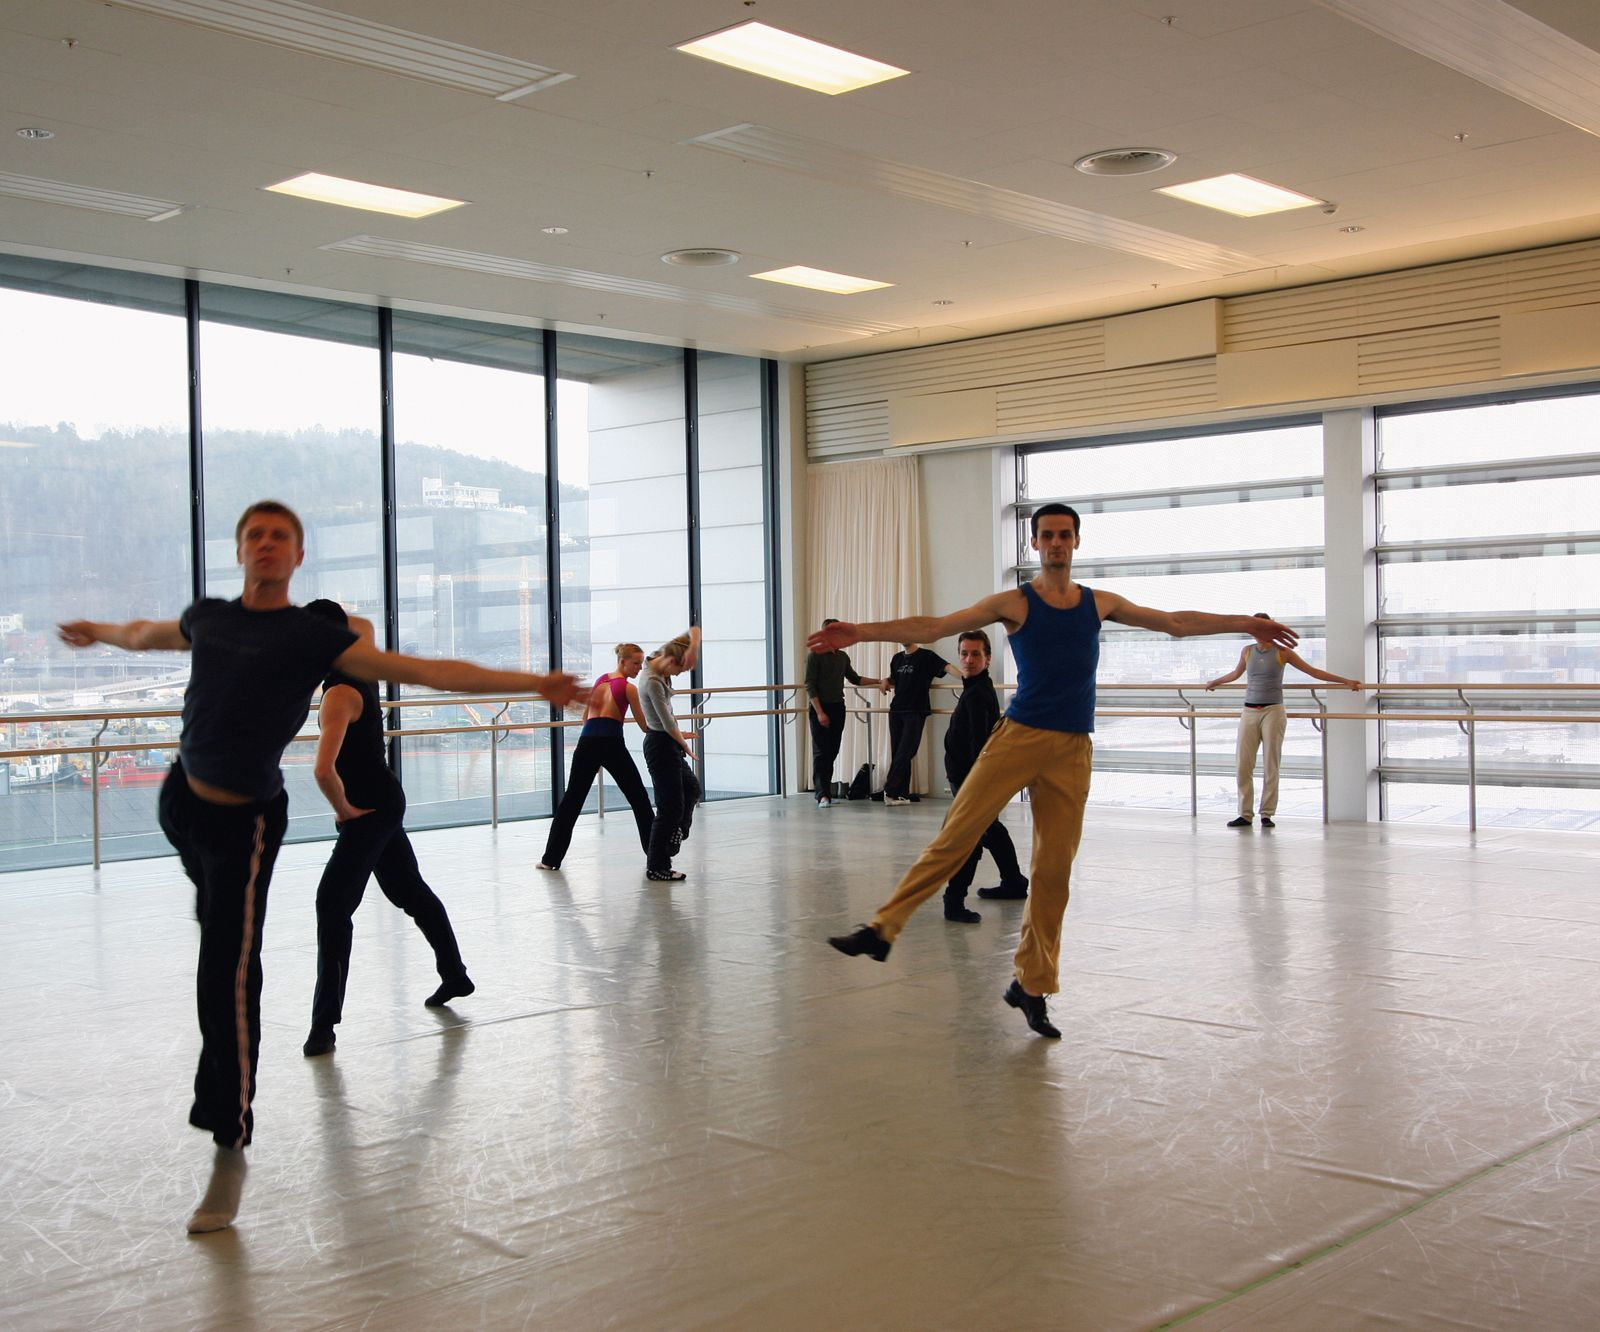 Dancers in rehearsal. Photo: Statsbygg